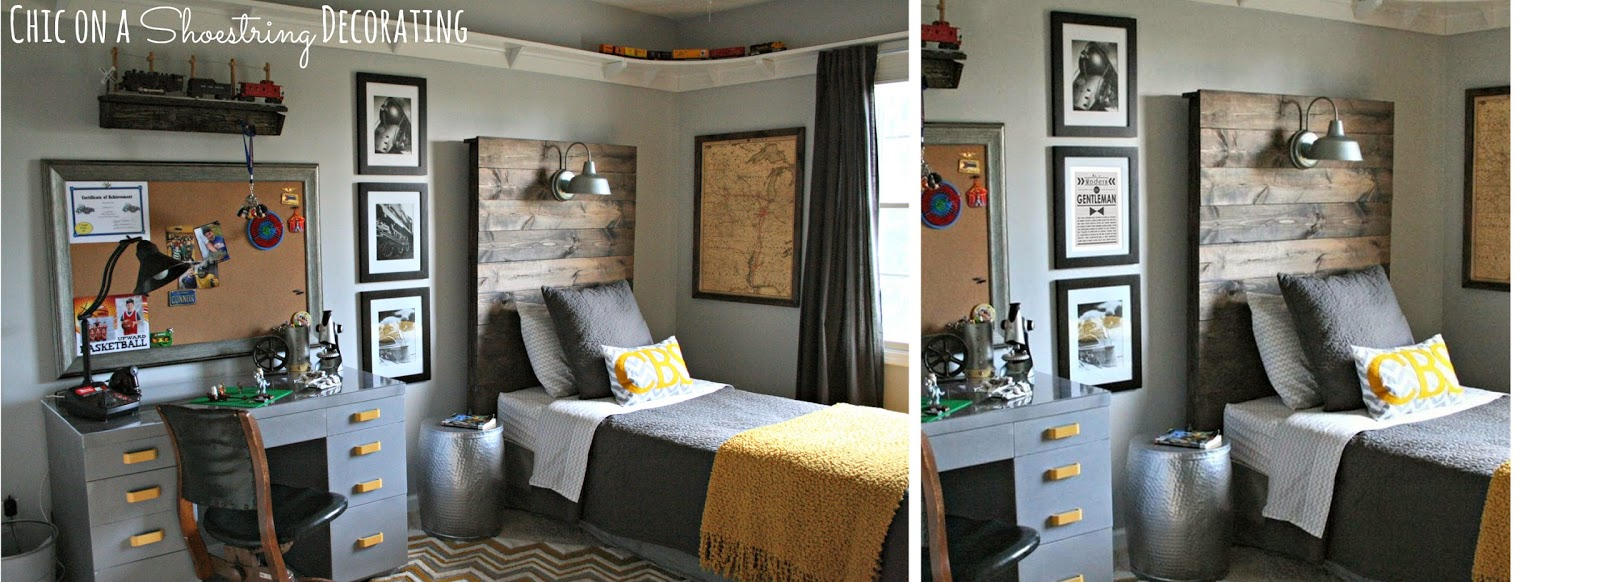 How to Make a Rustic Headboard with a Light Fixture by Chic on a Shoestring Decorating